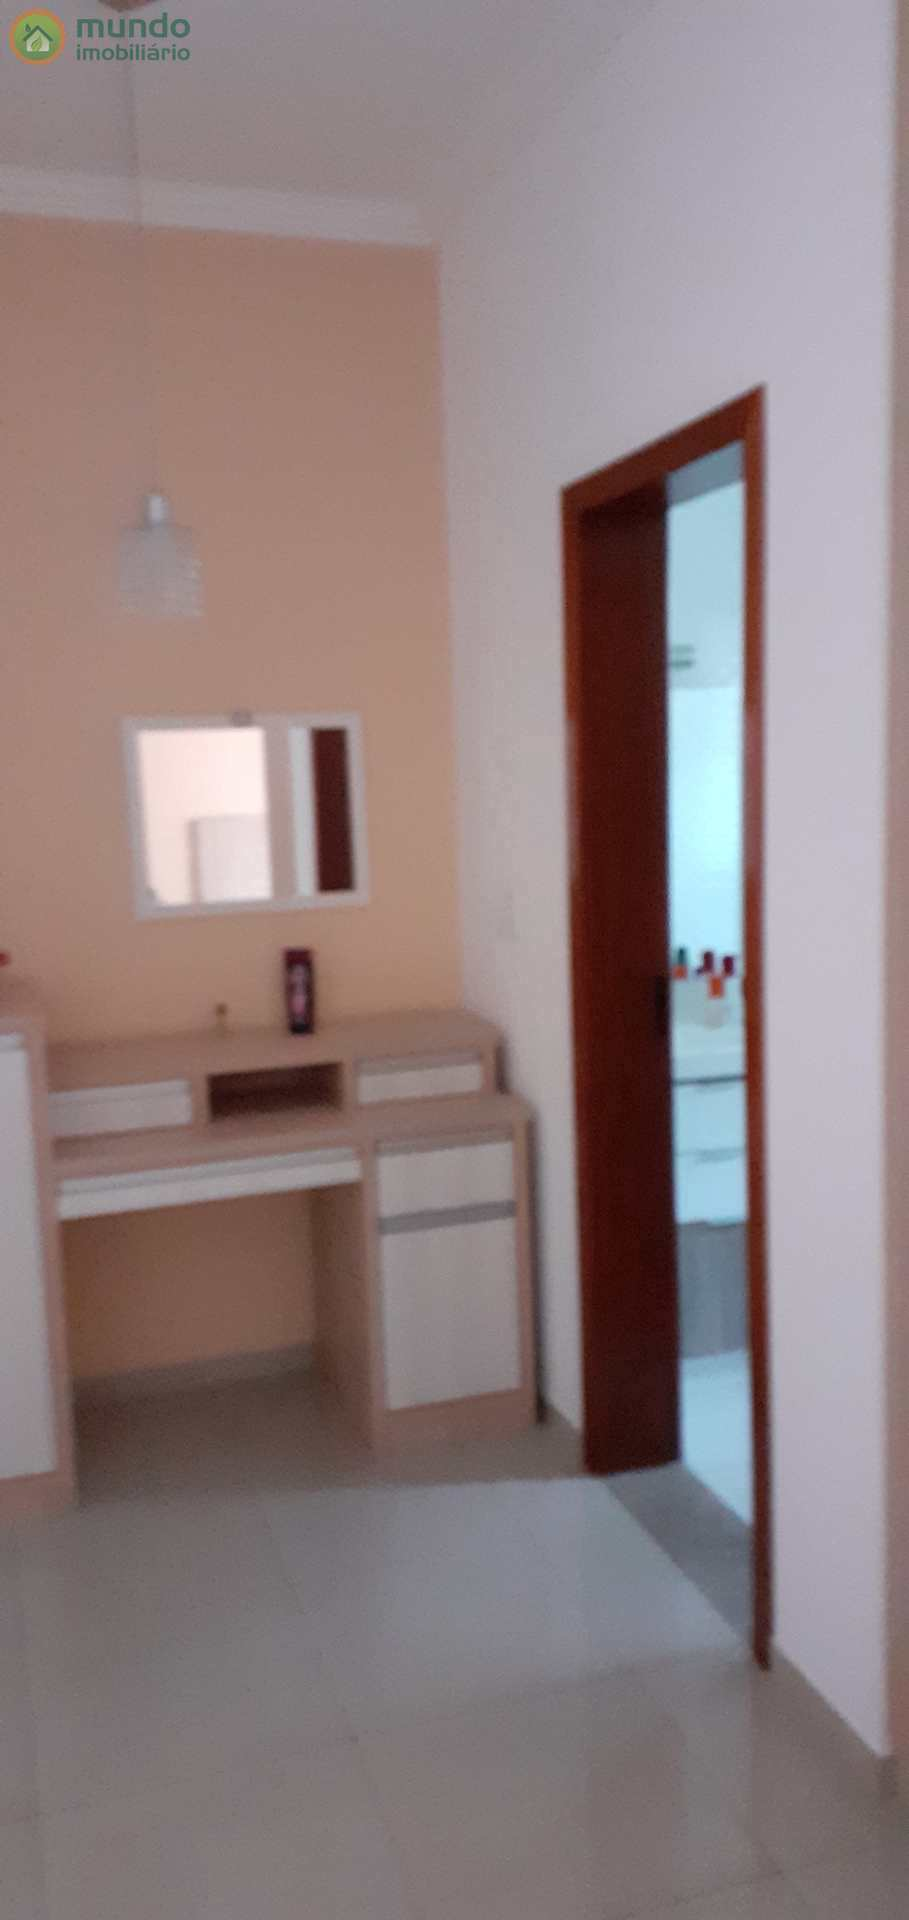 Casa com 3 dorms, Chácara do Visconde, Taubaté - R$ 900 mil, Cod: 6604